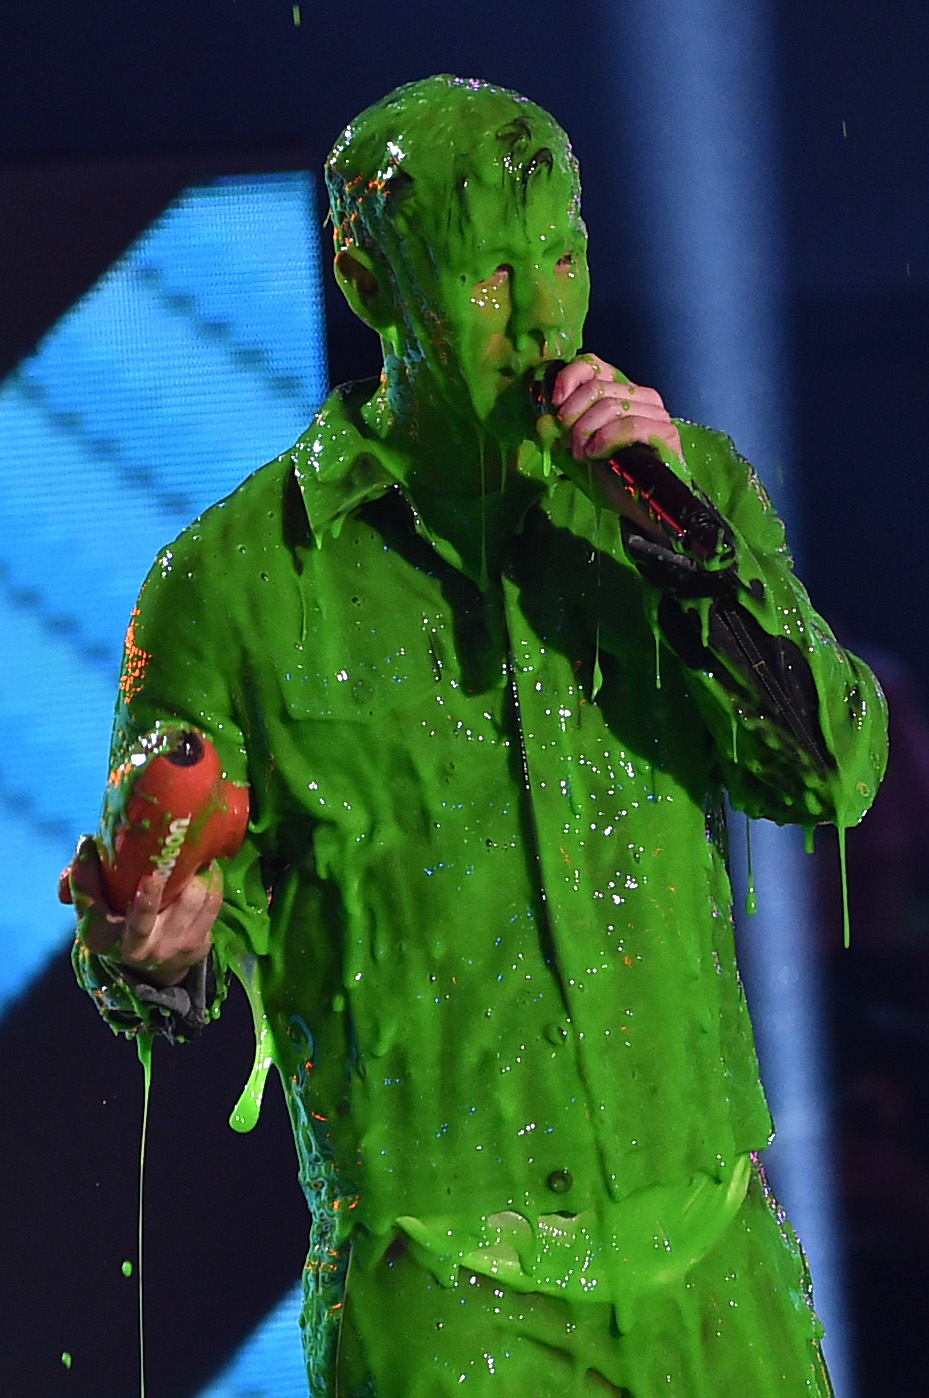 Nick-Jonas-get-slimed-while-accepting-award-for-Favorite-Male-Singer-onstage-during-Nickelodeon's-28th-Annual-Kids'-Choice-Awards-held-at-The-Forum-on-March-28-2015-in-Inglewood-Calif